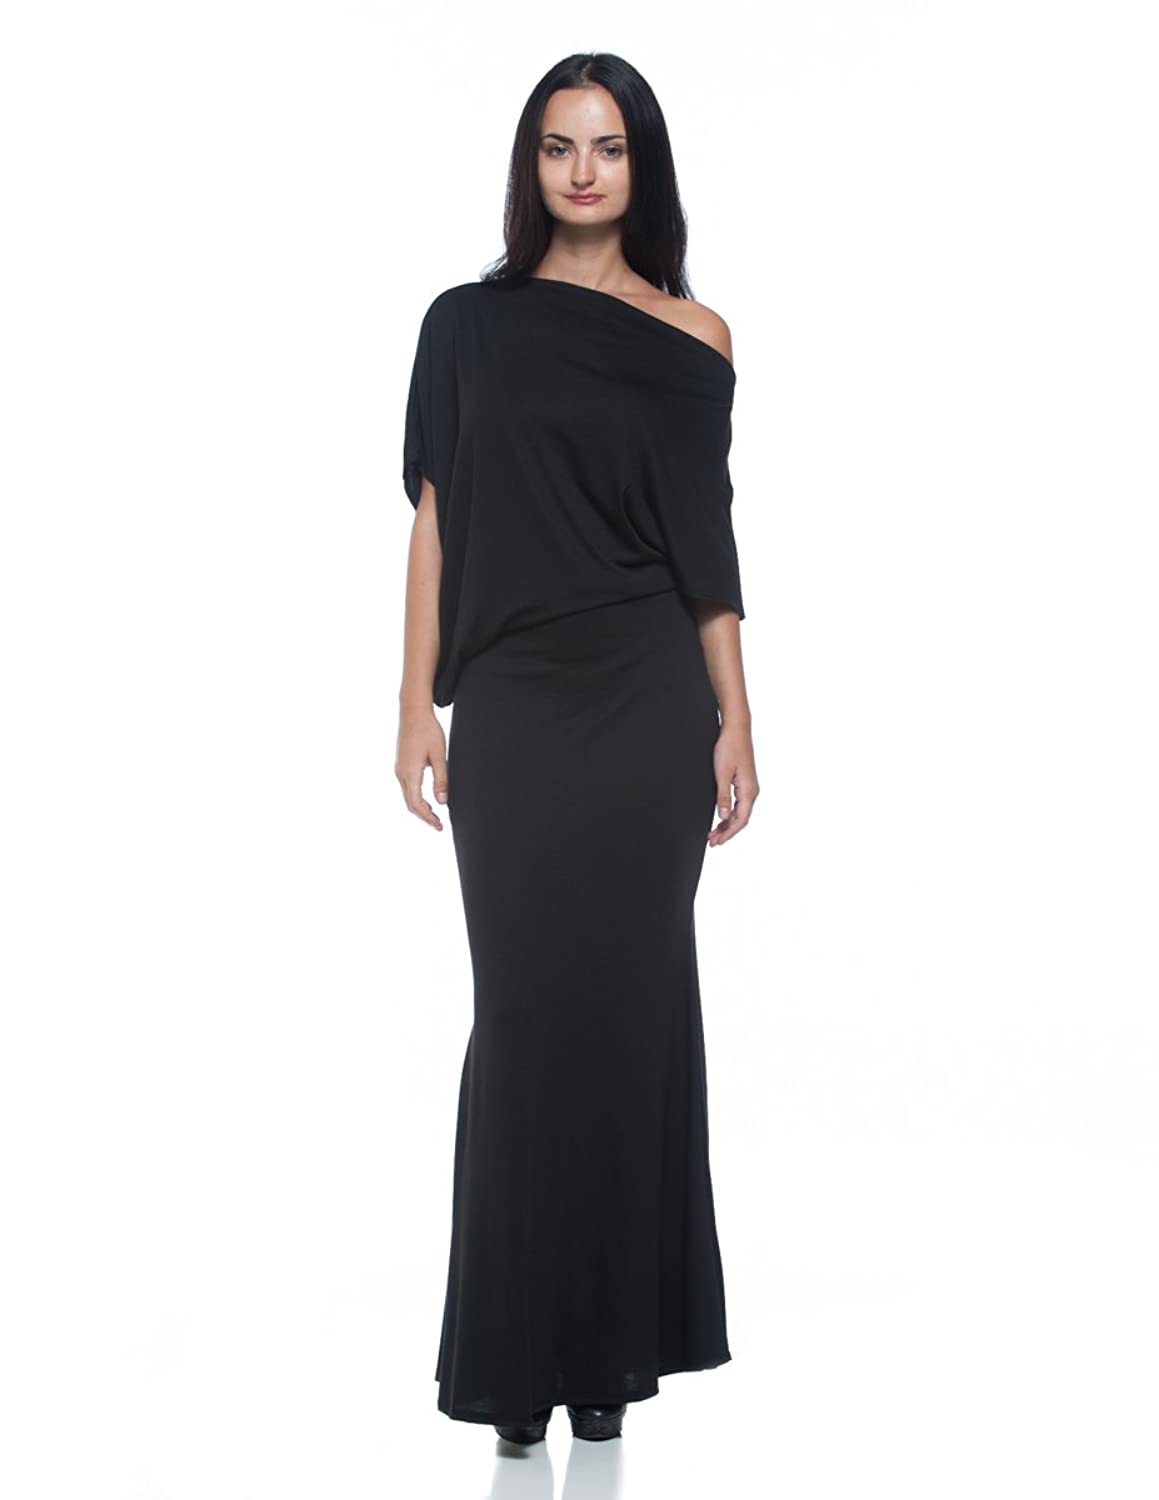 Women's Black Modern Asymmetric Boat Neck Blouson Dolman Sleeve Long Maxi Dress